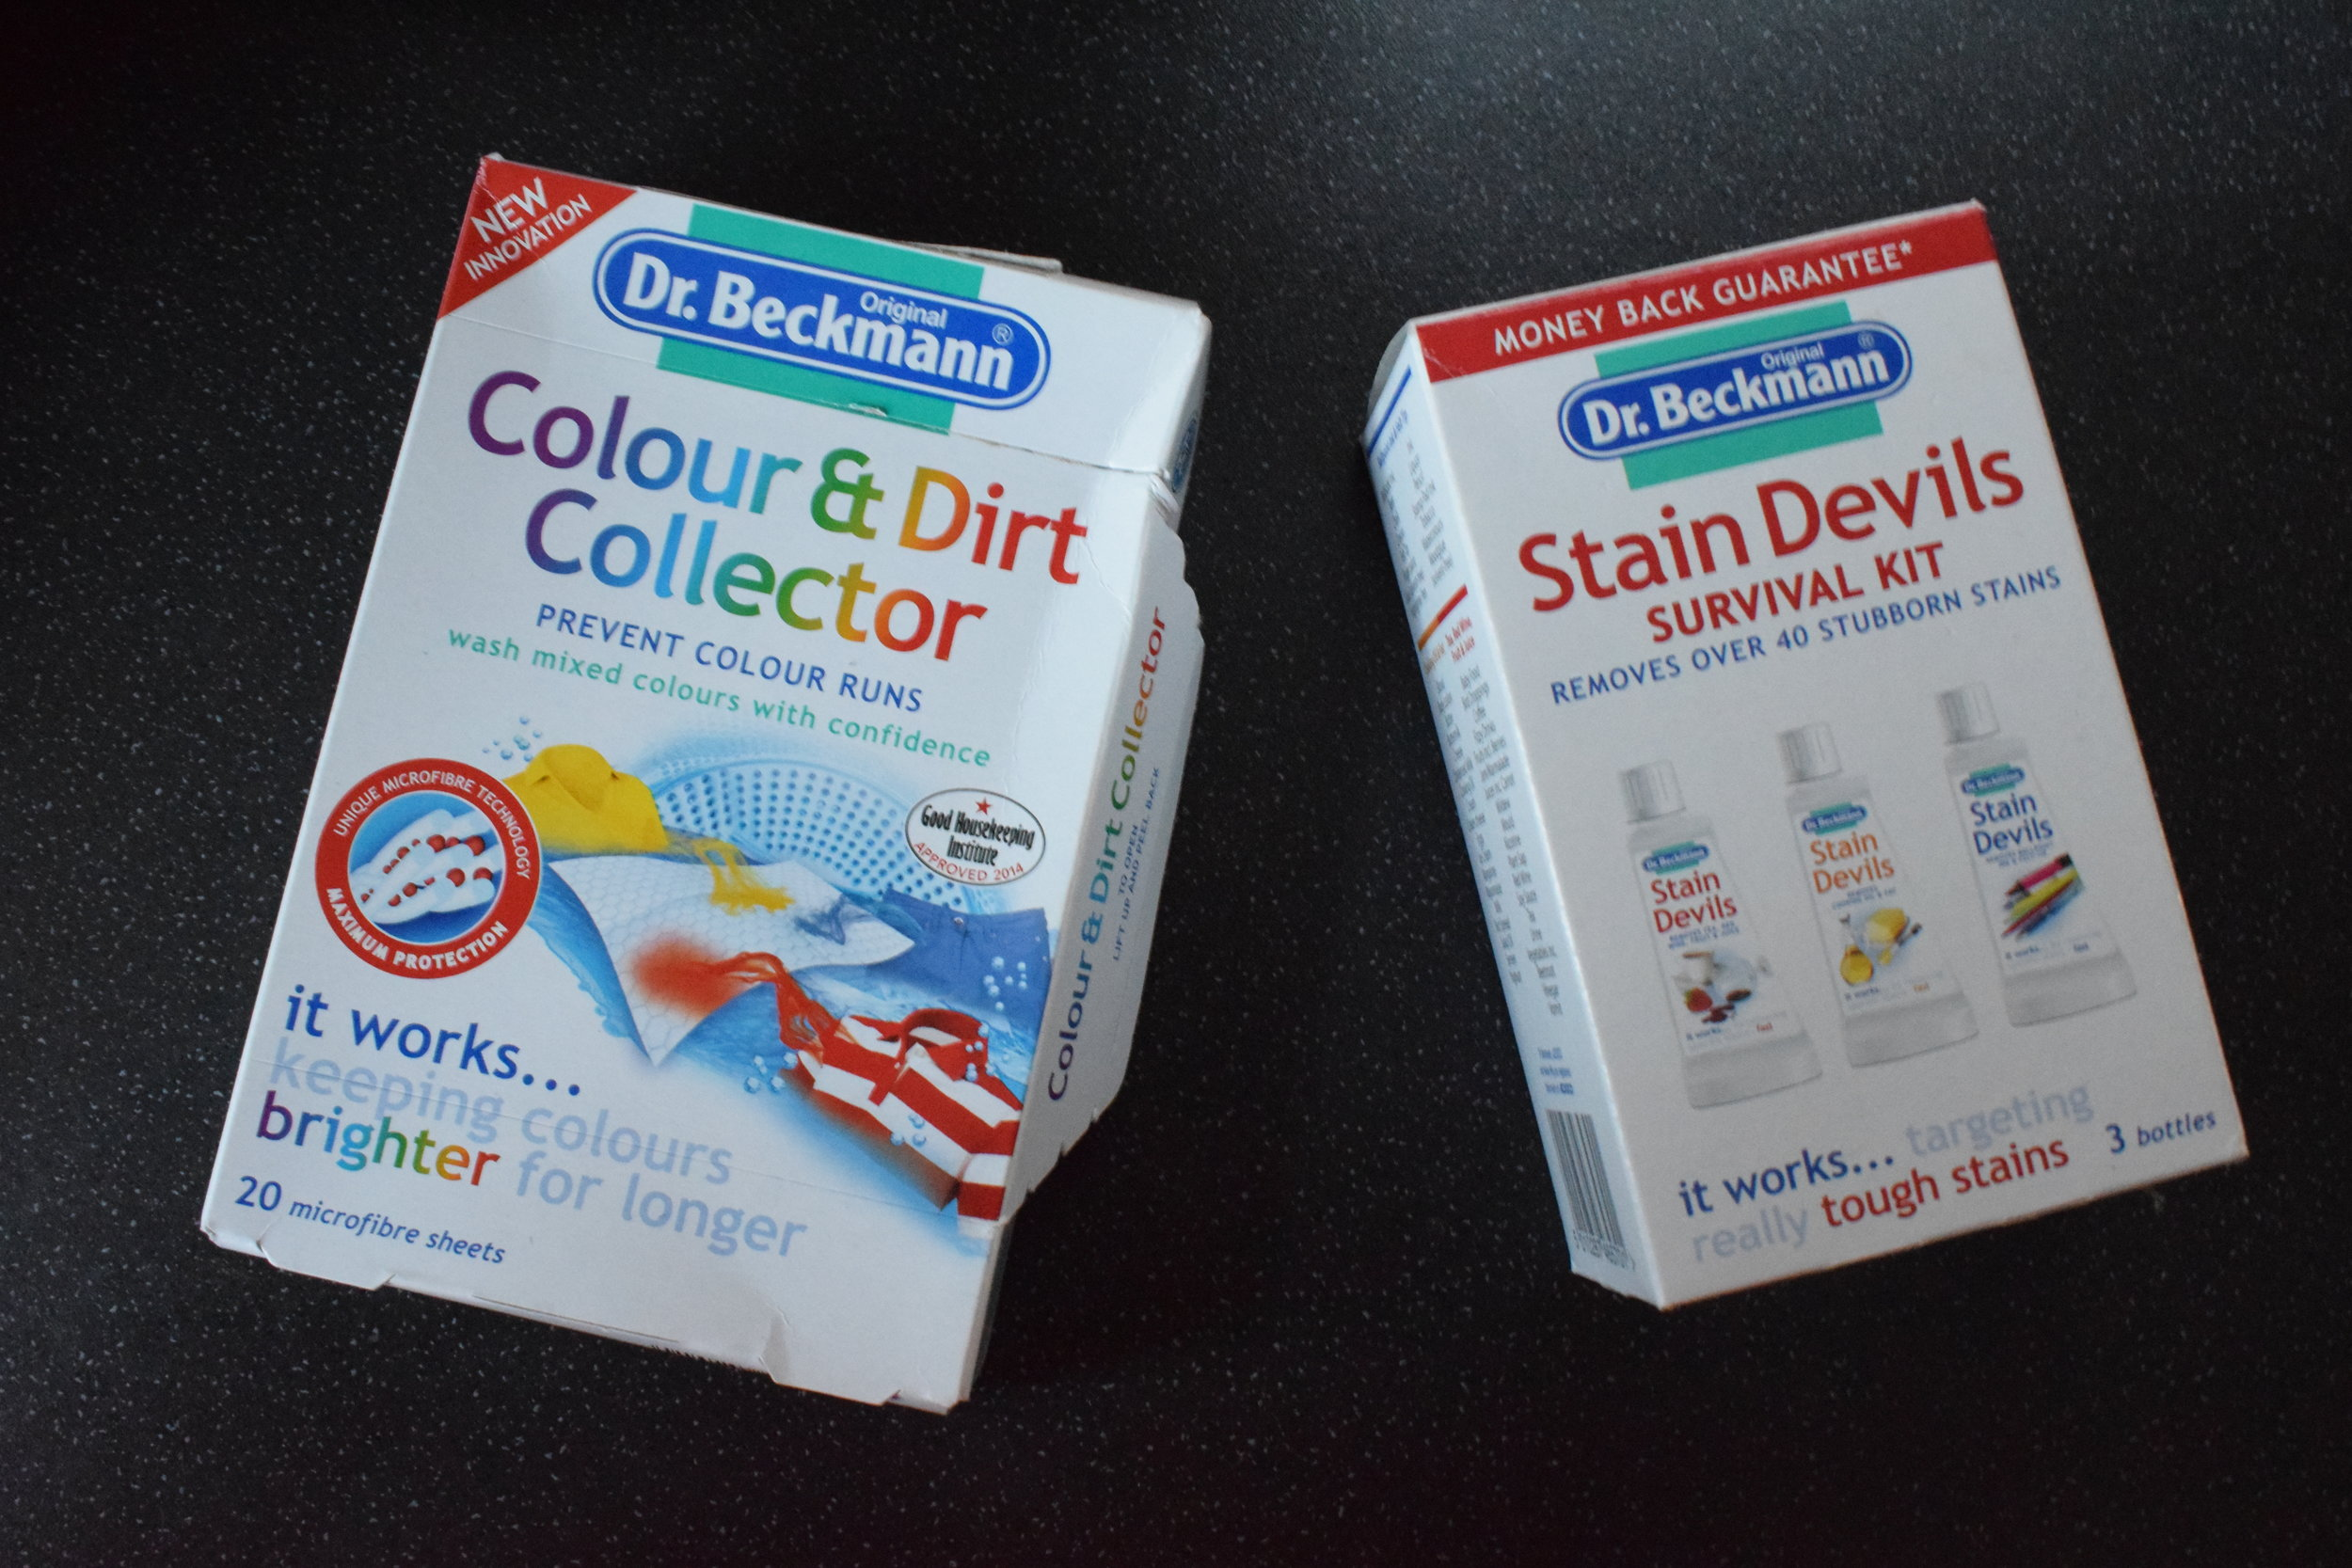 Dr. Beckmann Colour & Dirt Collector and Stain Dveils survival Kit